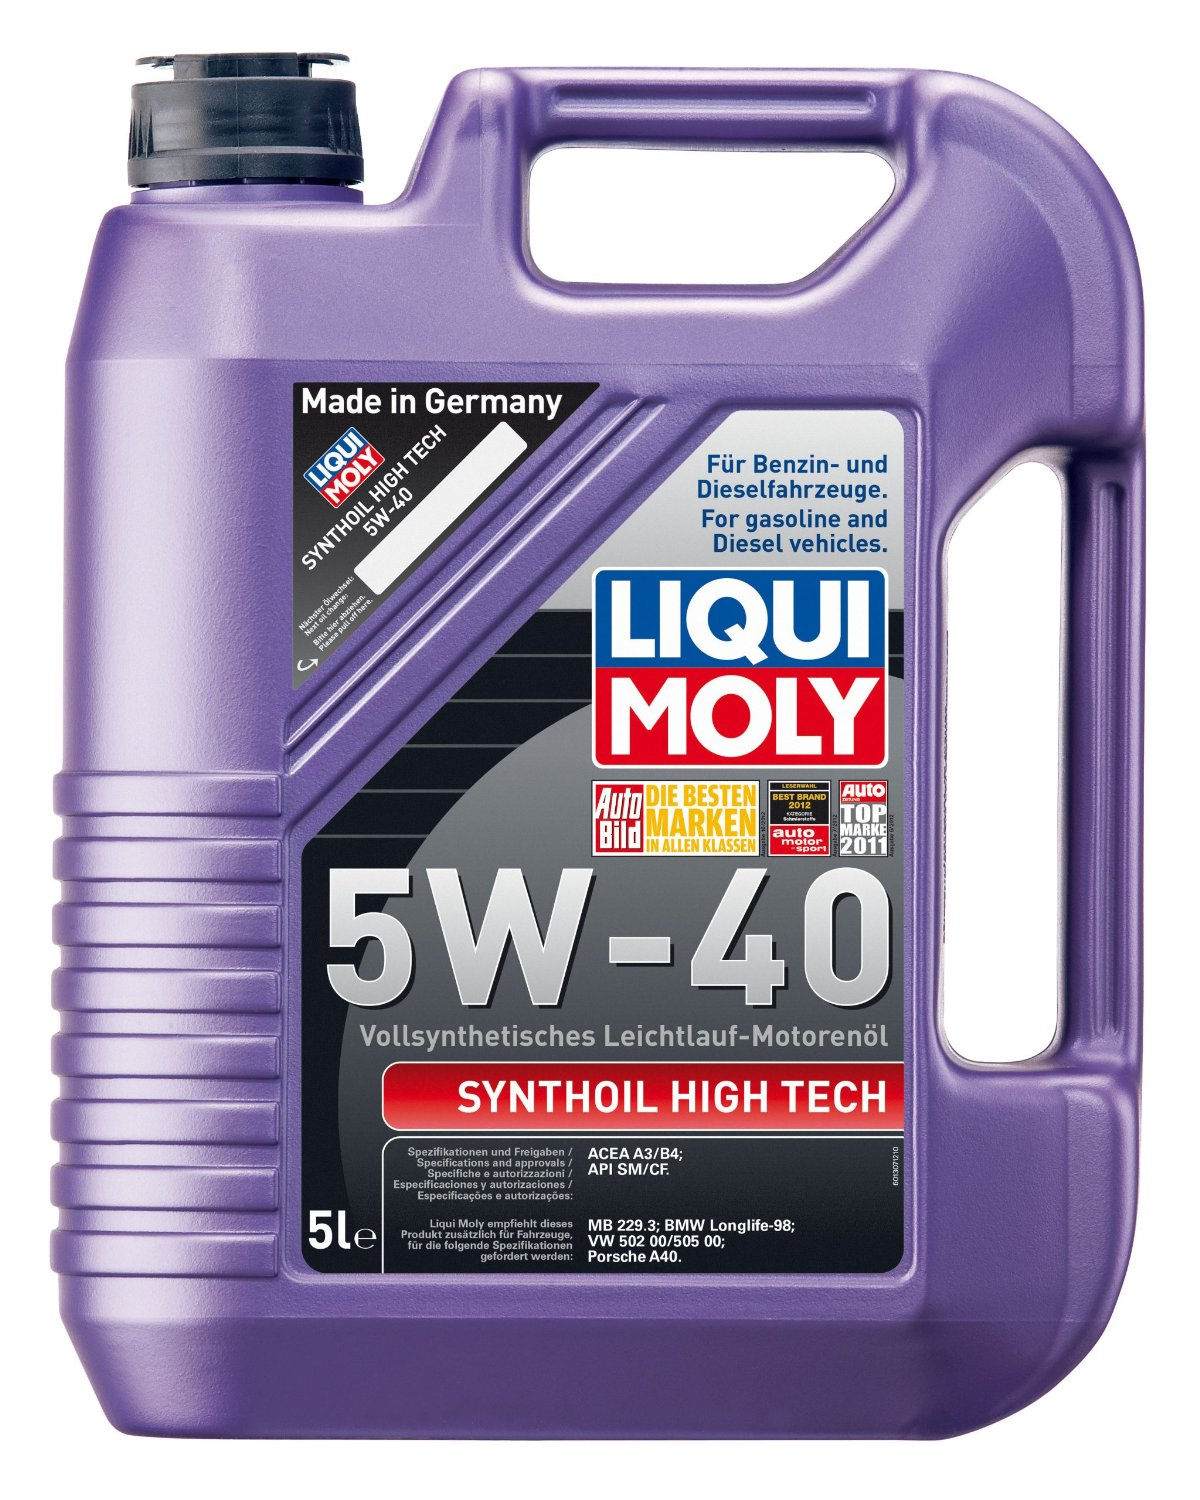 liqui moly synthoil high tech 5w 40 im test liqui moly motor l synthoil high tech testbericht. Black Bedroom Furniture Sets. Home Design Ideas